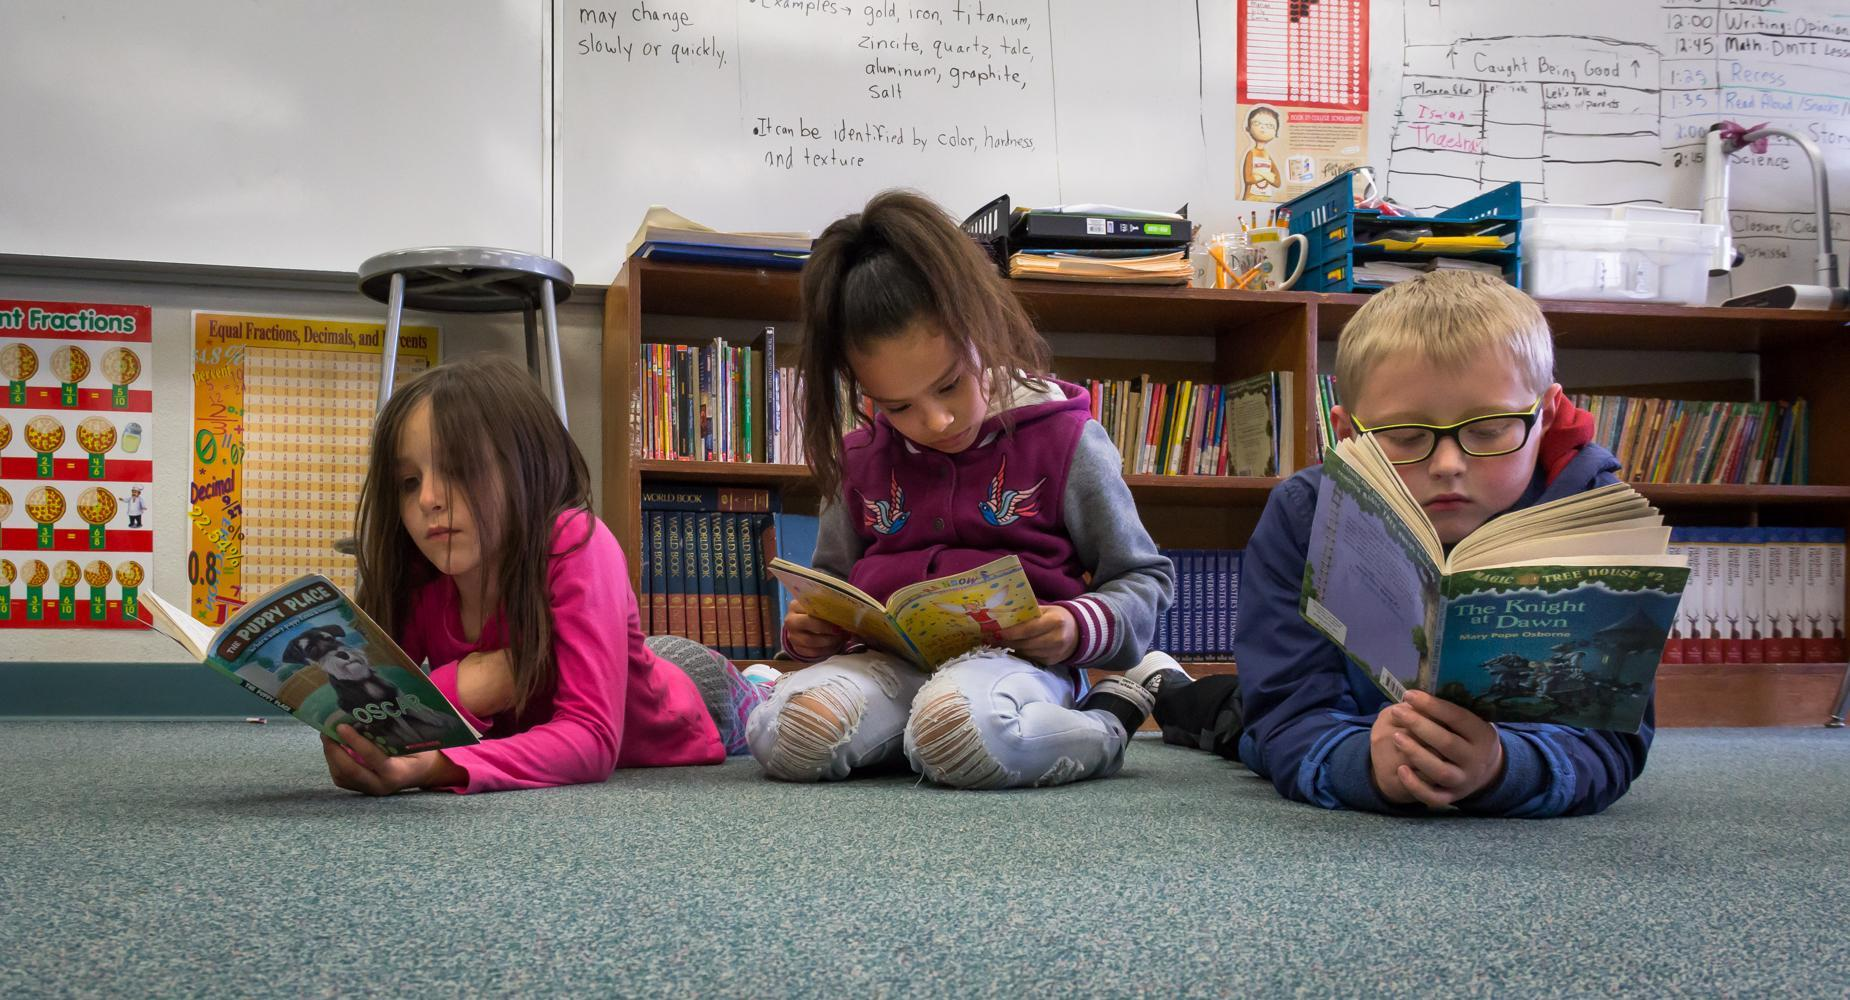 Three children lay on the carpet to read books